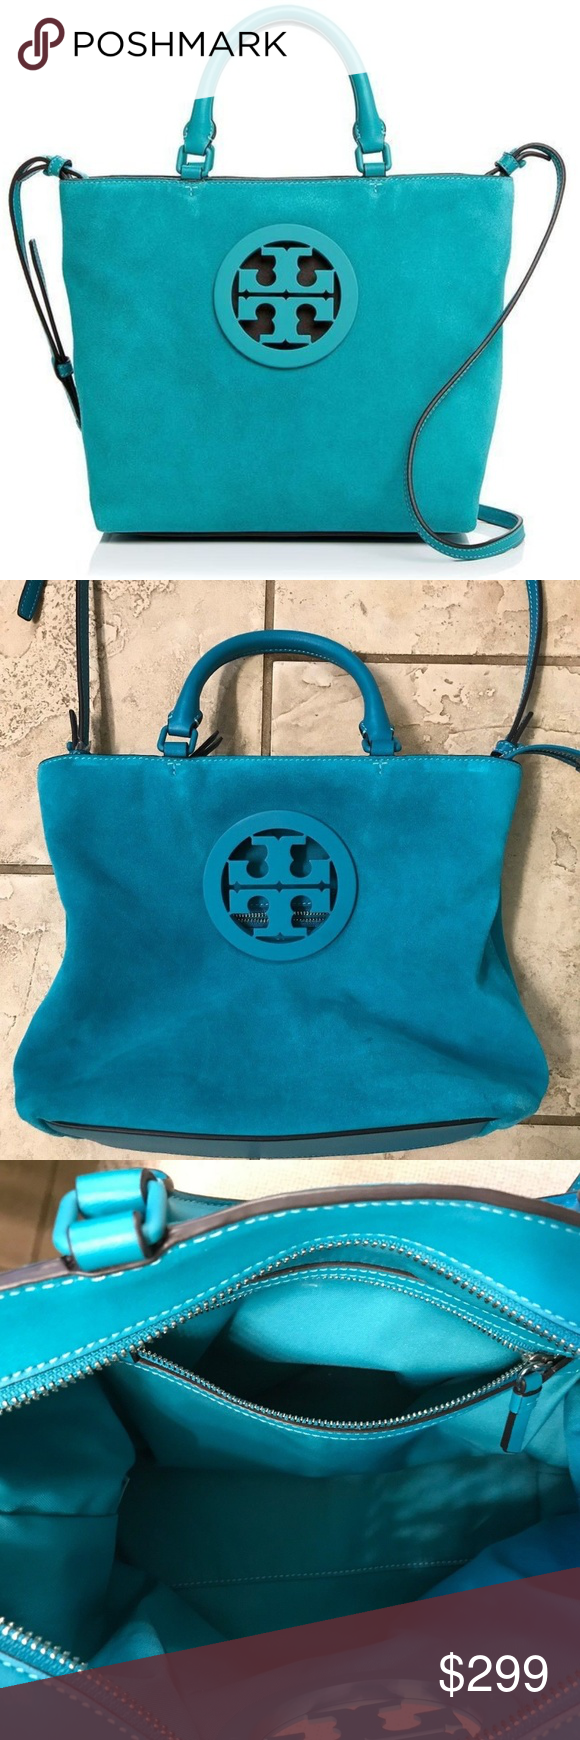 f7230cc1f08 Authentic Tory Burch Small Suede Tote You are looking at the Tory Burch  Charlie Small Suede